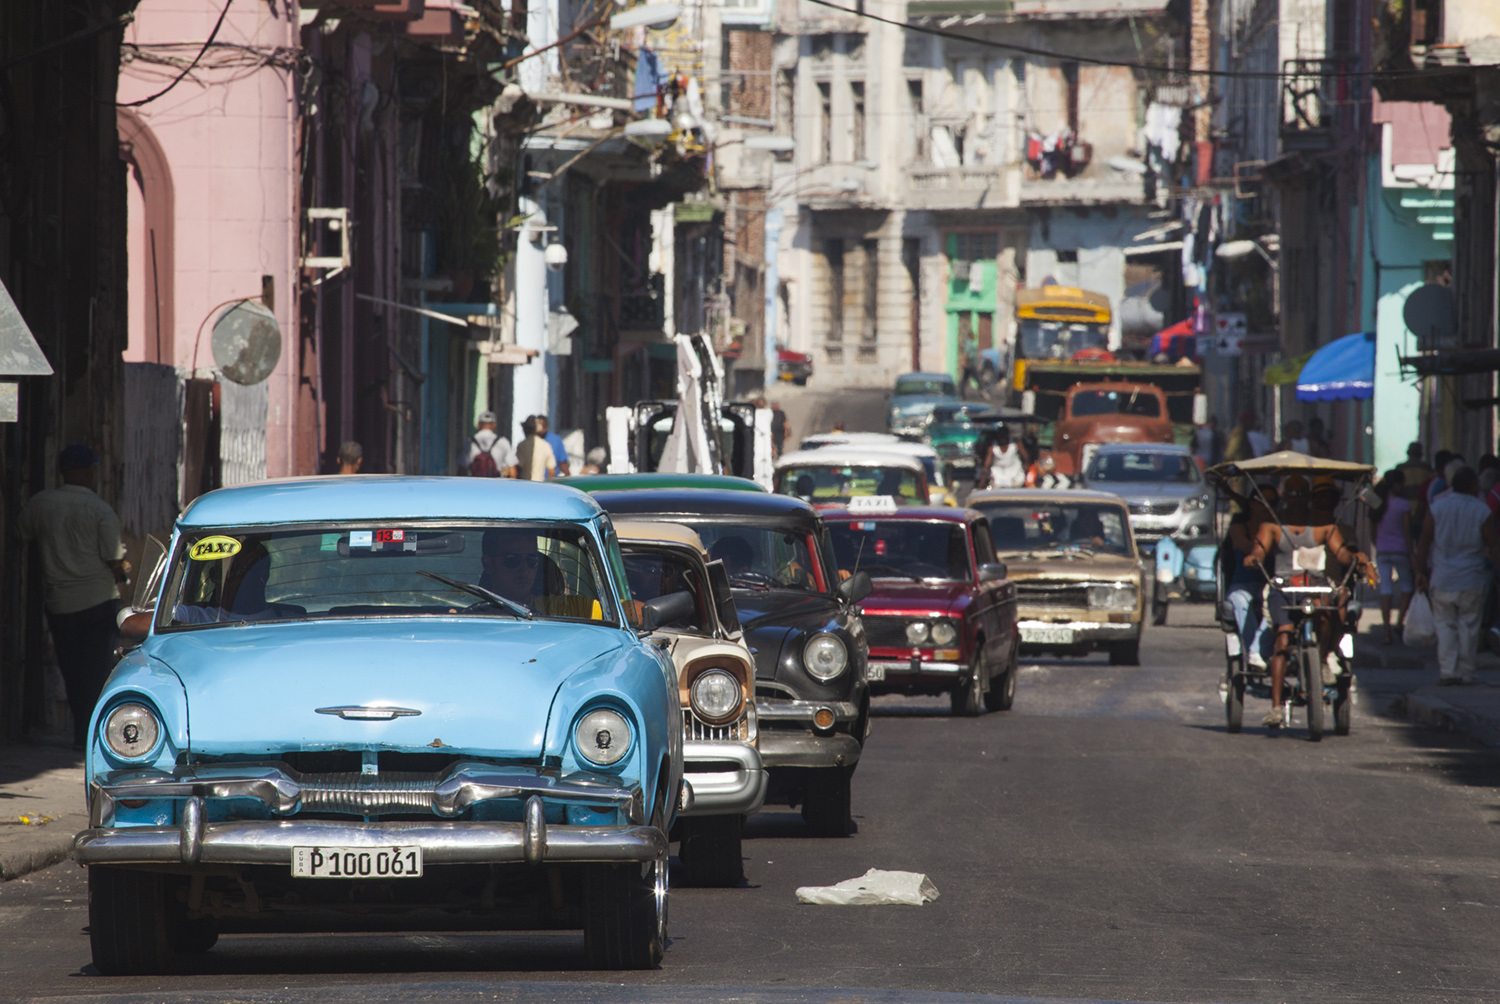 Cuba, photography, oldtimers, havana, cars, (c) bart coolen